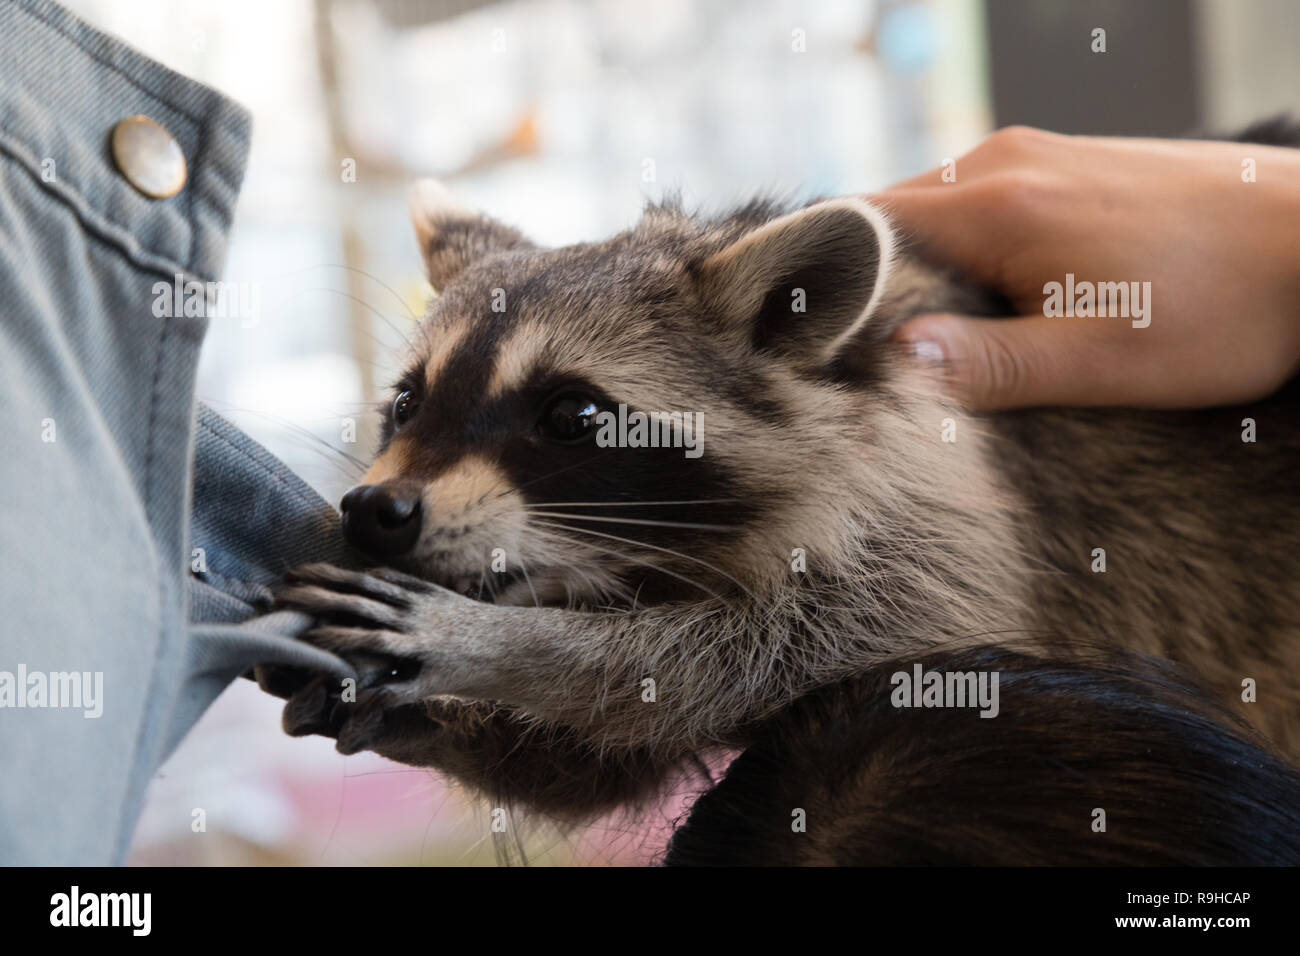 Pet Raccoon Stock Photos & Pet Raccoon Stock Images - Alamy